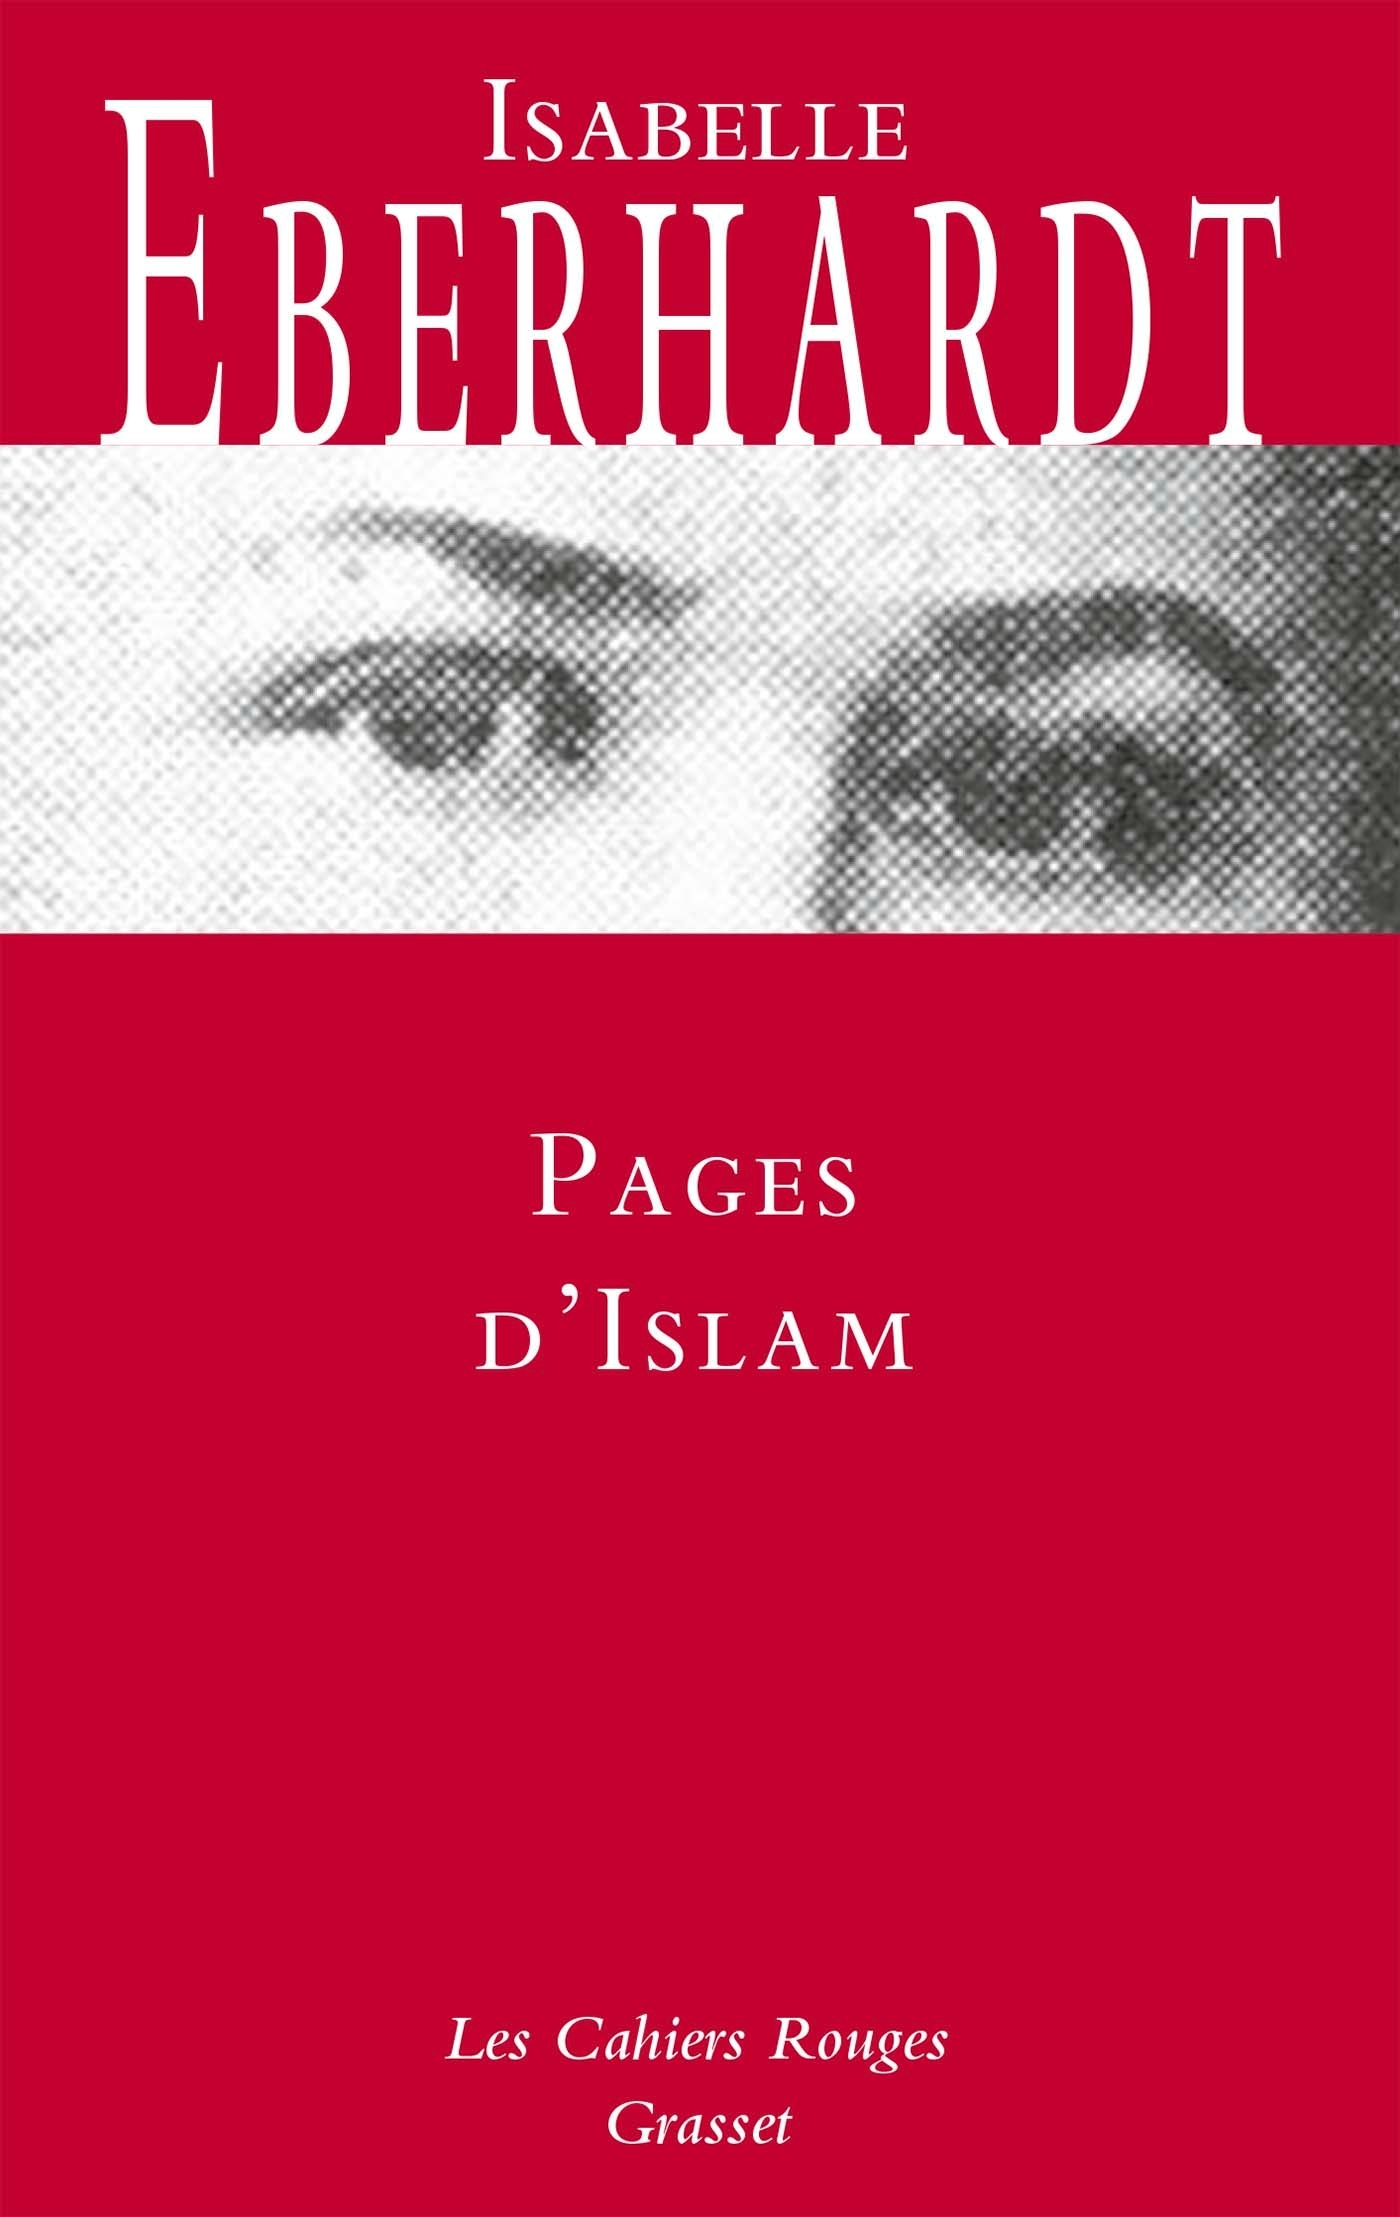 PAGES D'ISLAM